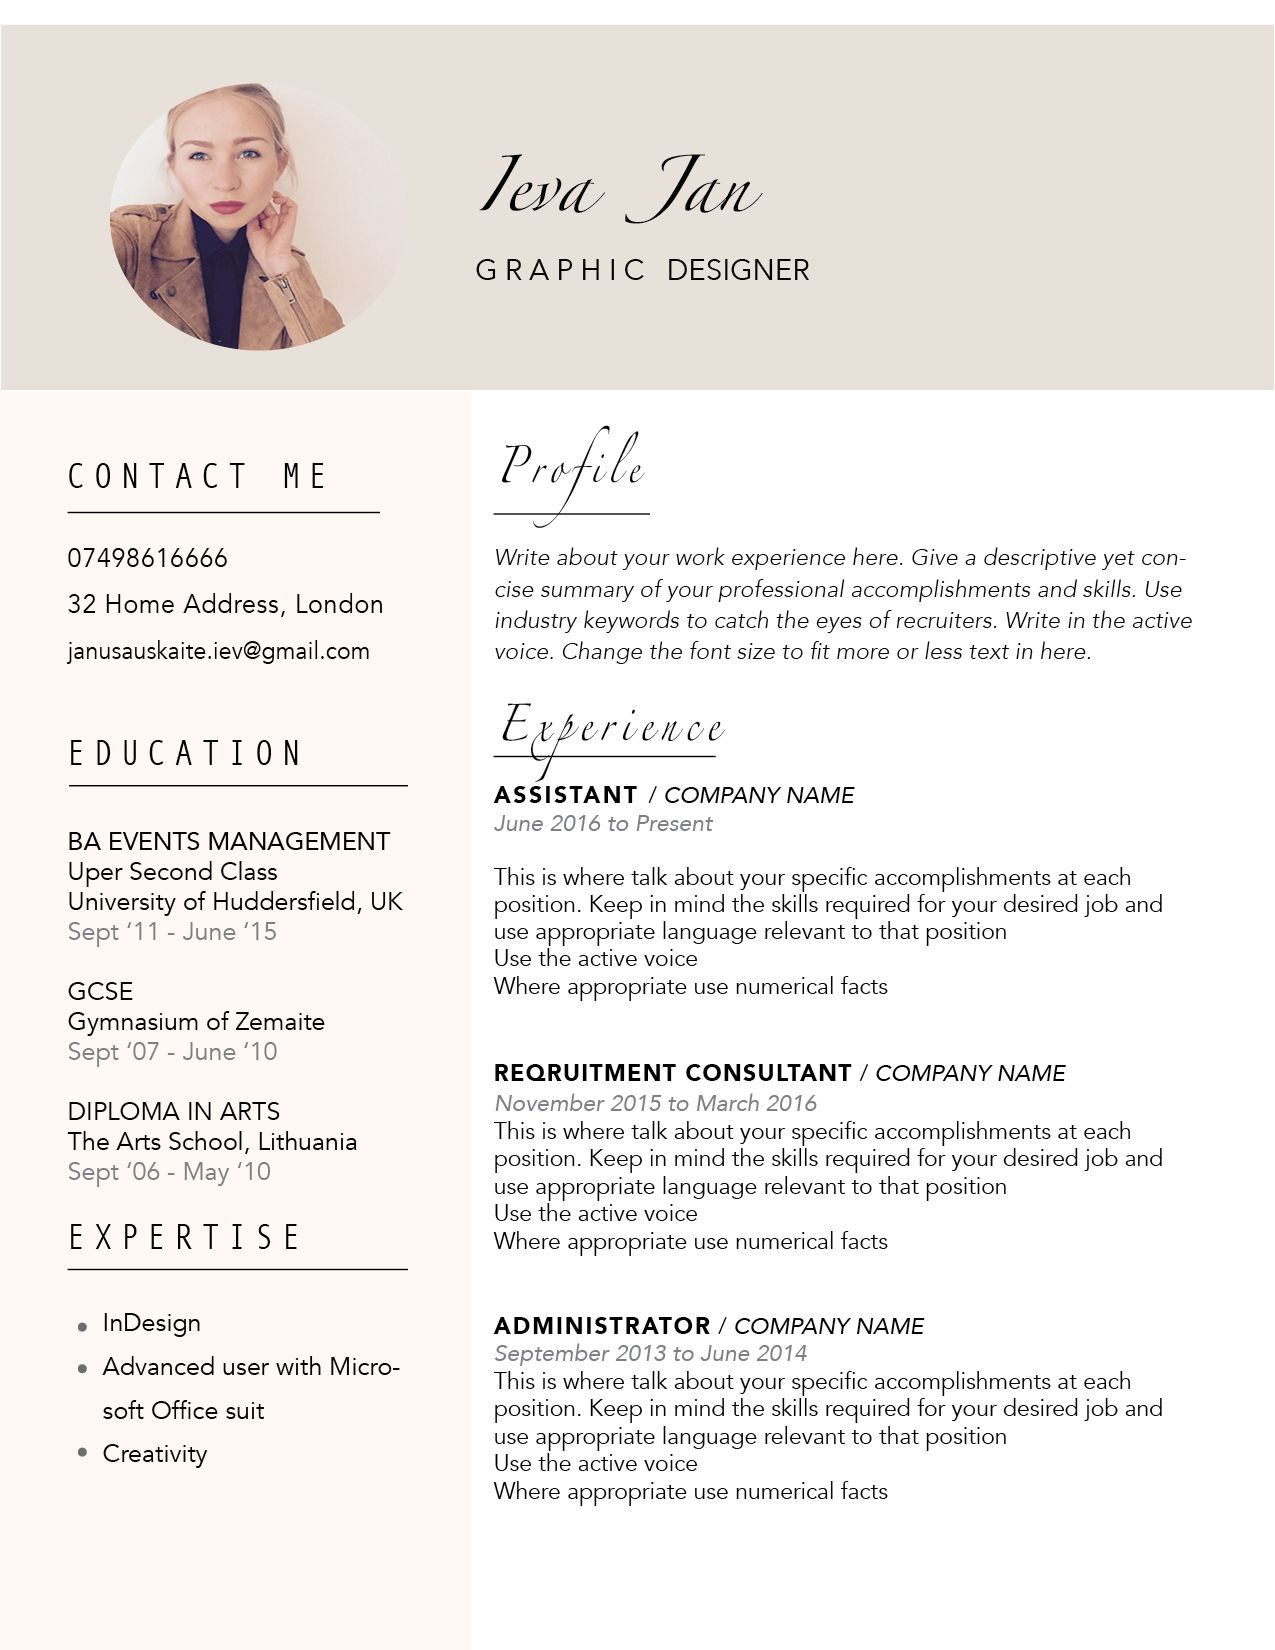 Hi there! I am cvbyeva meaning CV design is my thing. I am